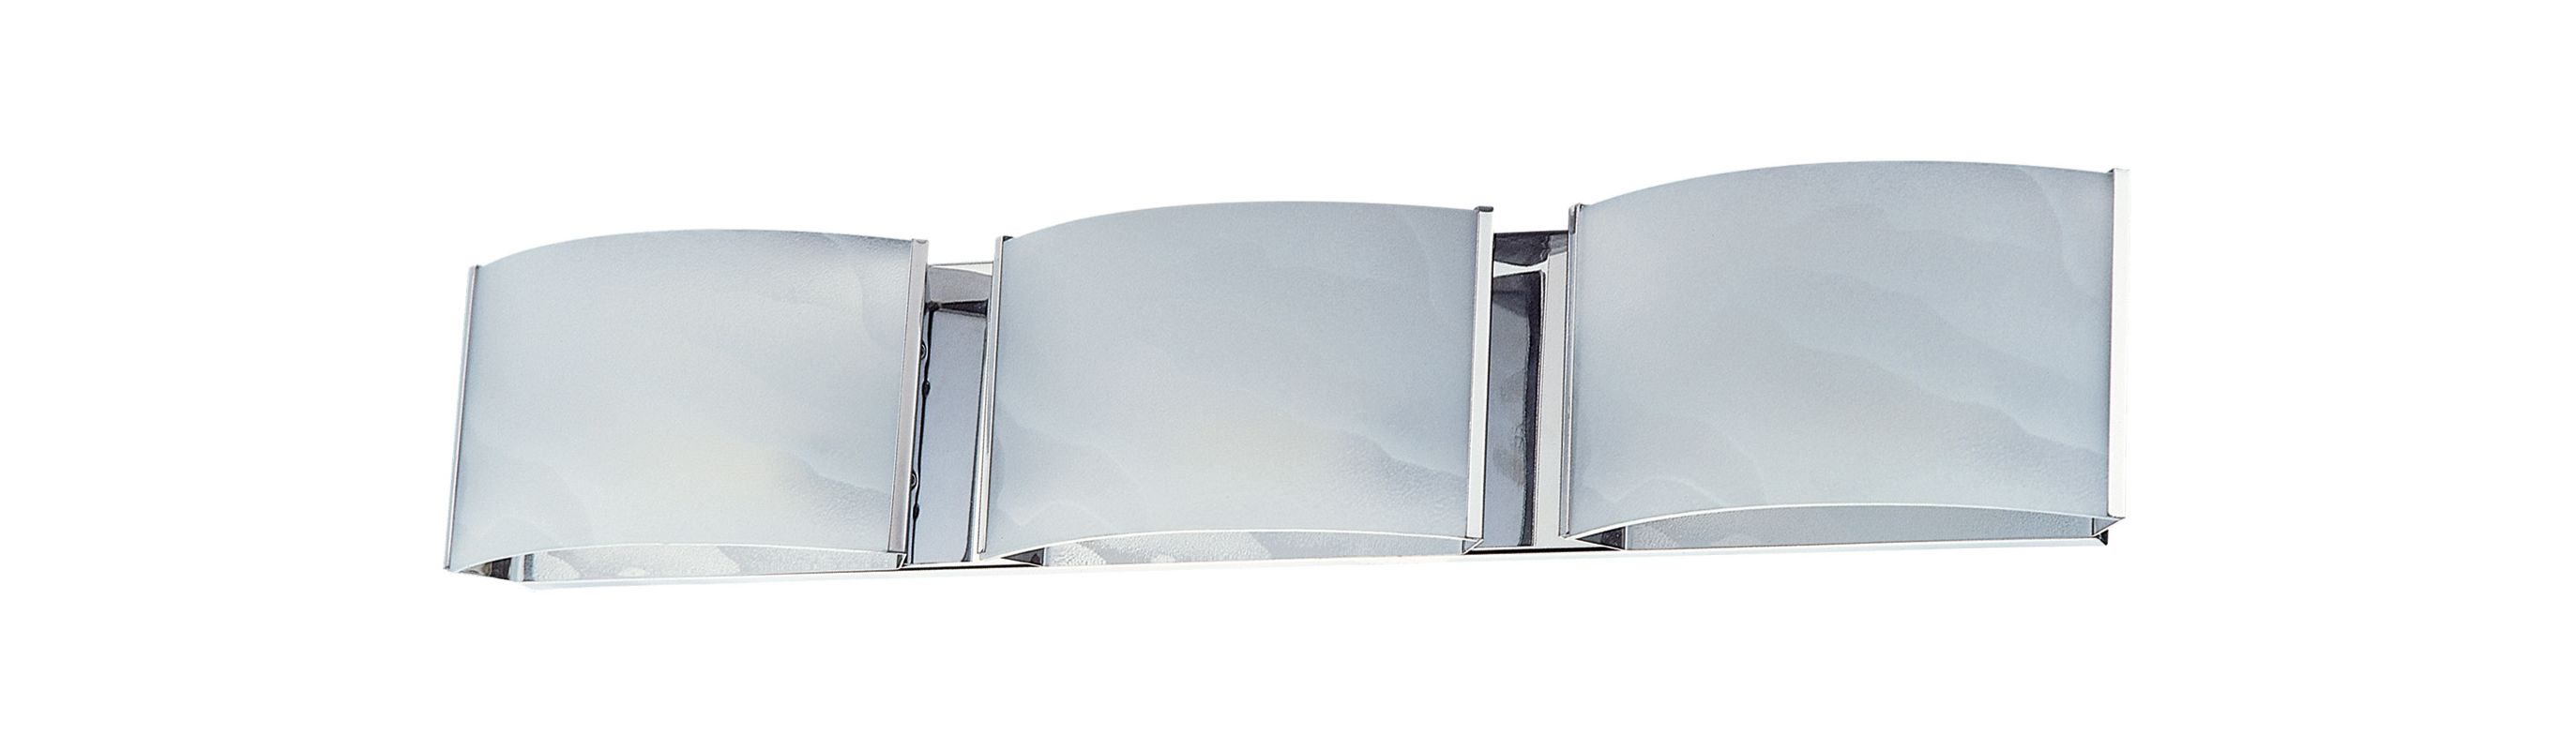 DVI Lighting DVP1743 Vanguard 3 Light Halogen Bathroom Vanity Fixture Sale $137.35 ITEM: bci1371352 ID#:DVP1743CH UPC: 61467173553 :